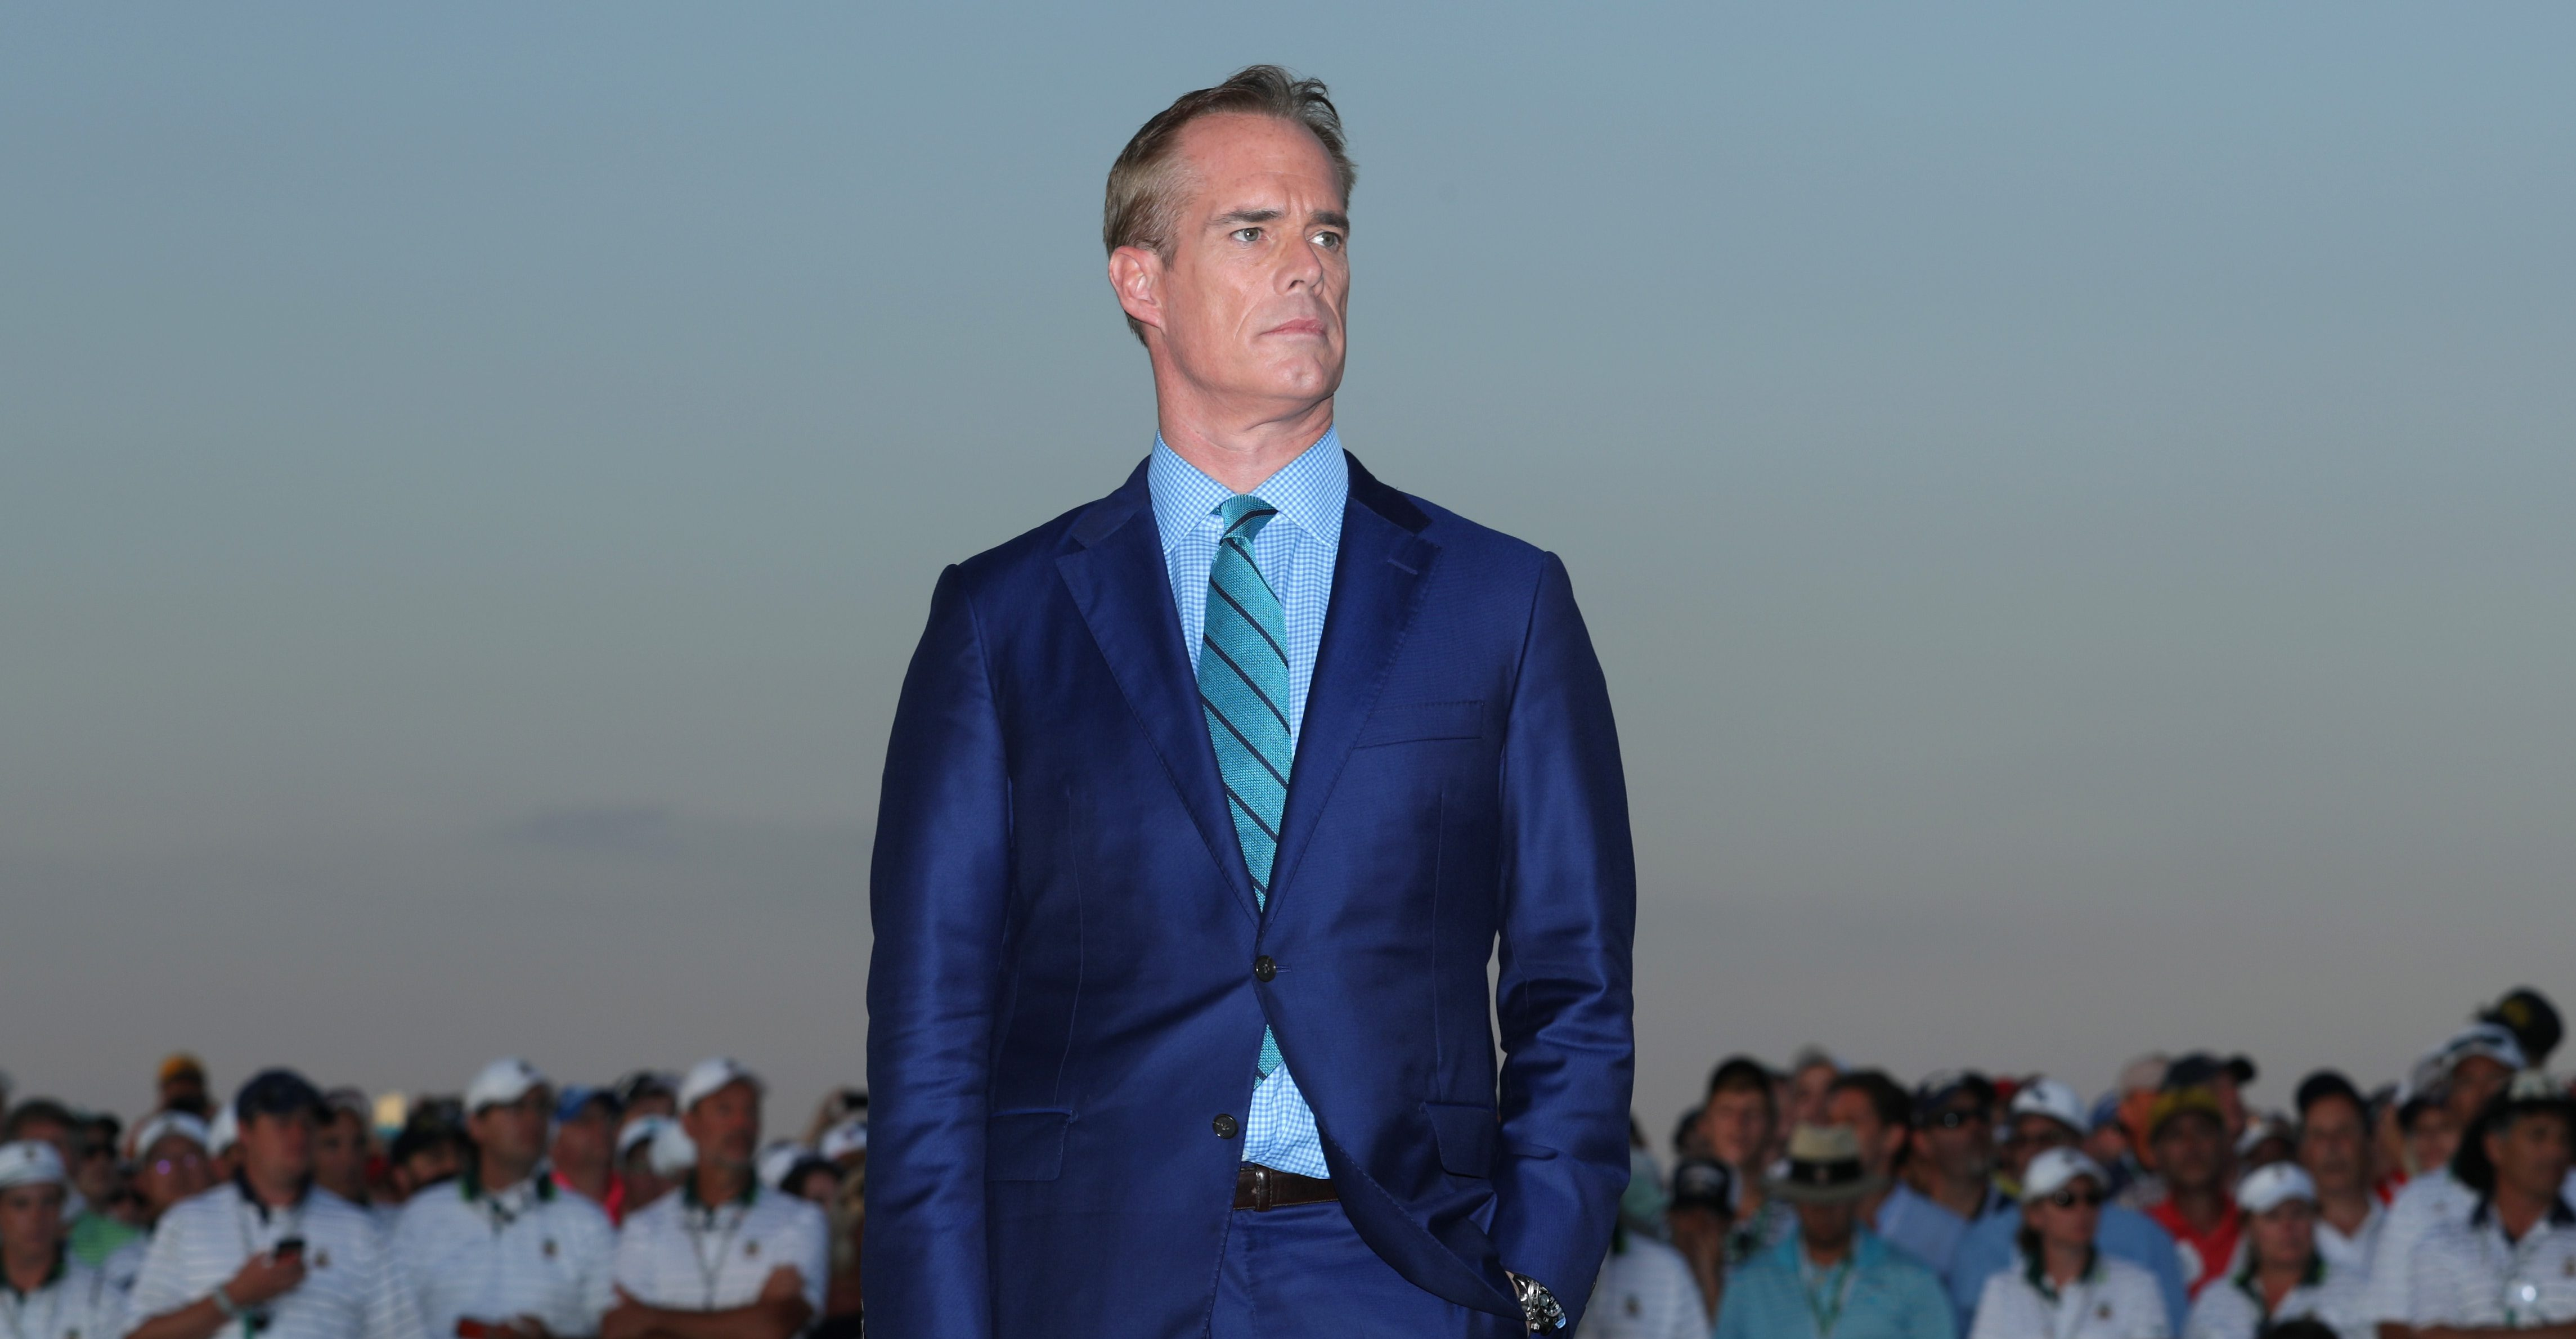 OAKMONT, PA - JUNE 19: Fox Sports golf anchor Joe Buck looks on after the final round of the U.S. Open at Oakmont Country Club on June 19, 2016 in Oakmont, Pennsylvania. (Photo by Sam Greenwood/Getty Images)